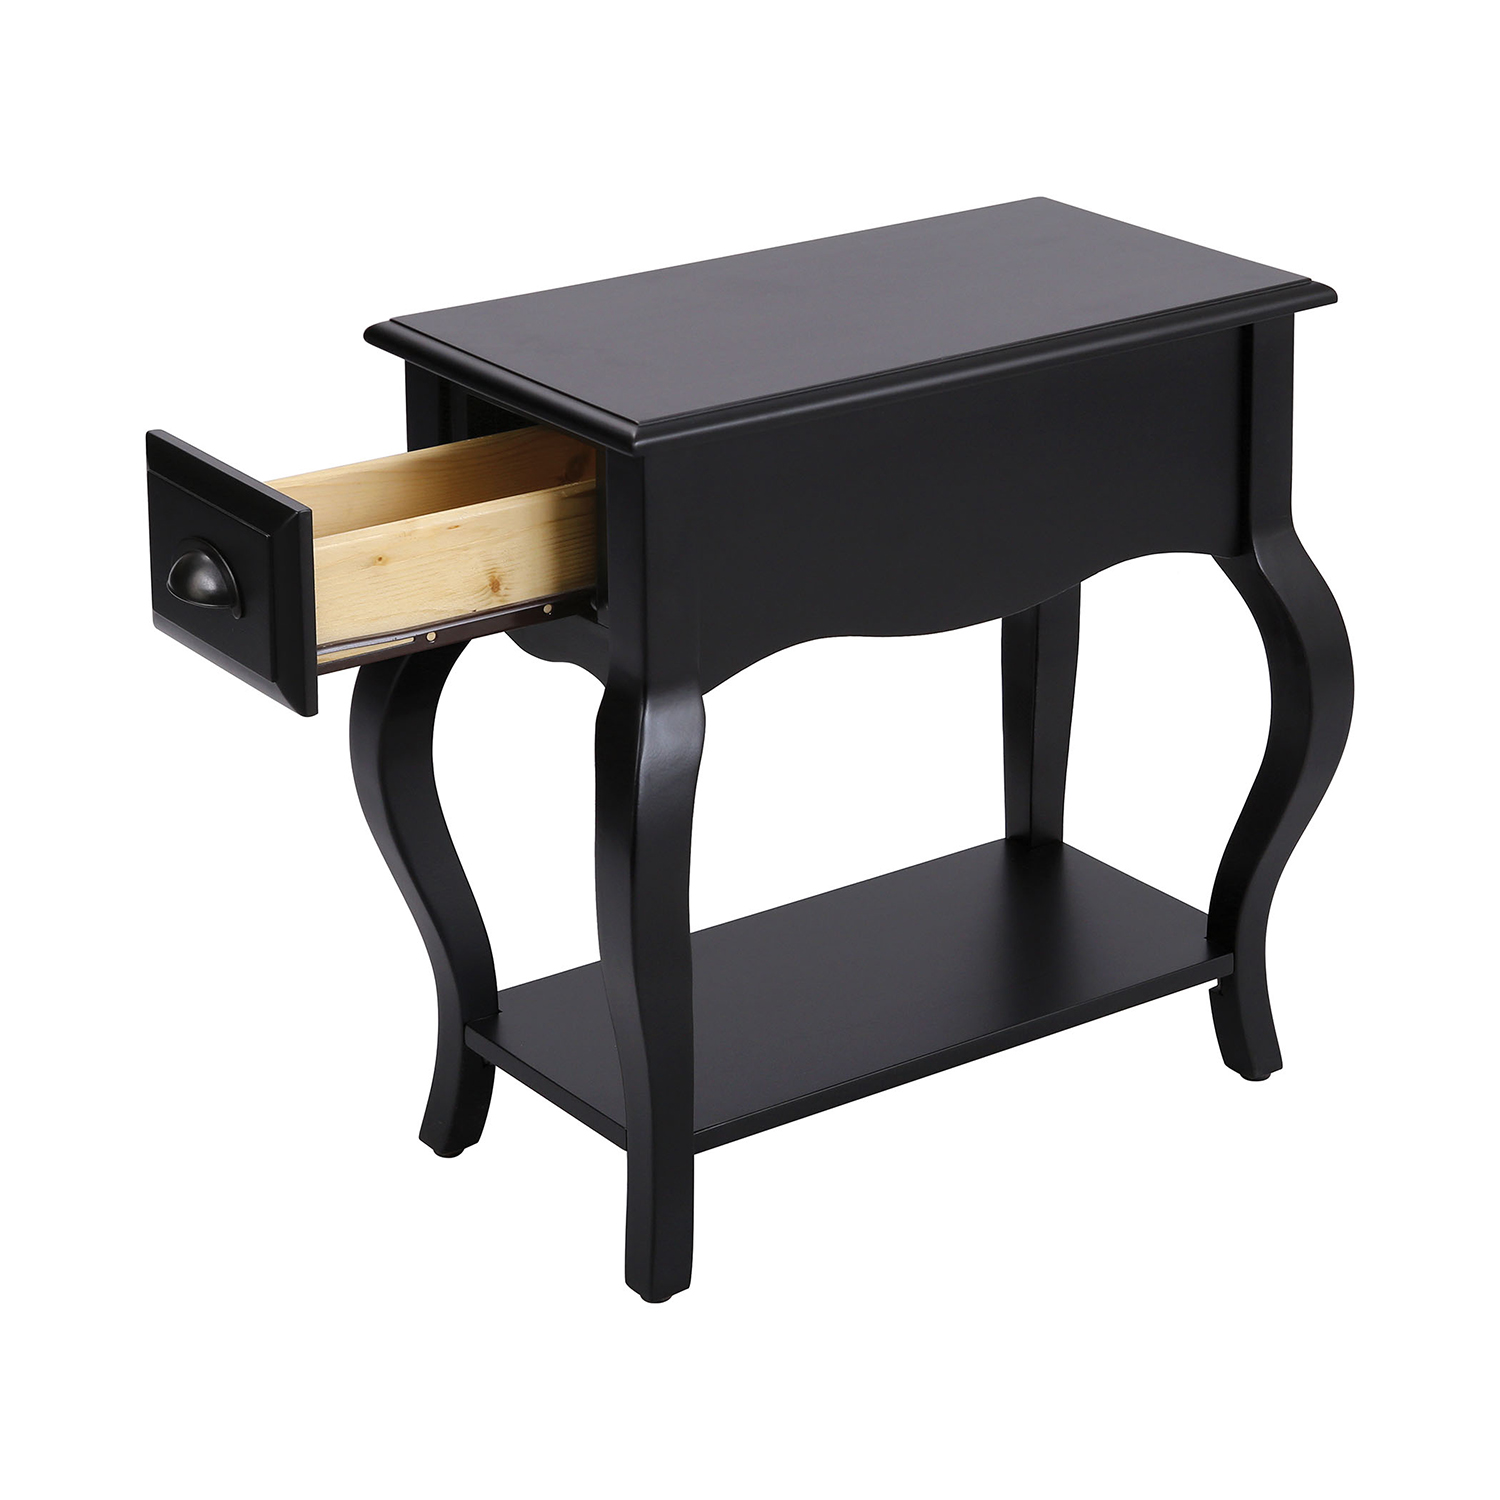 stein world arroyo grande black and bronze accent table bellacor hover zoom ikea storage units pub garden furniture small bedside round coffee legs chest pier one lamps clearance